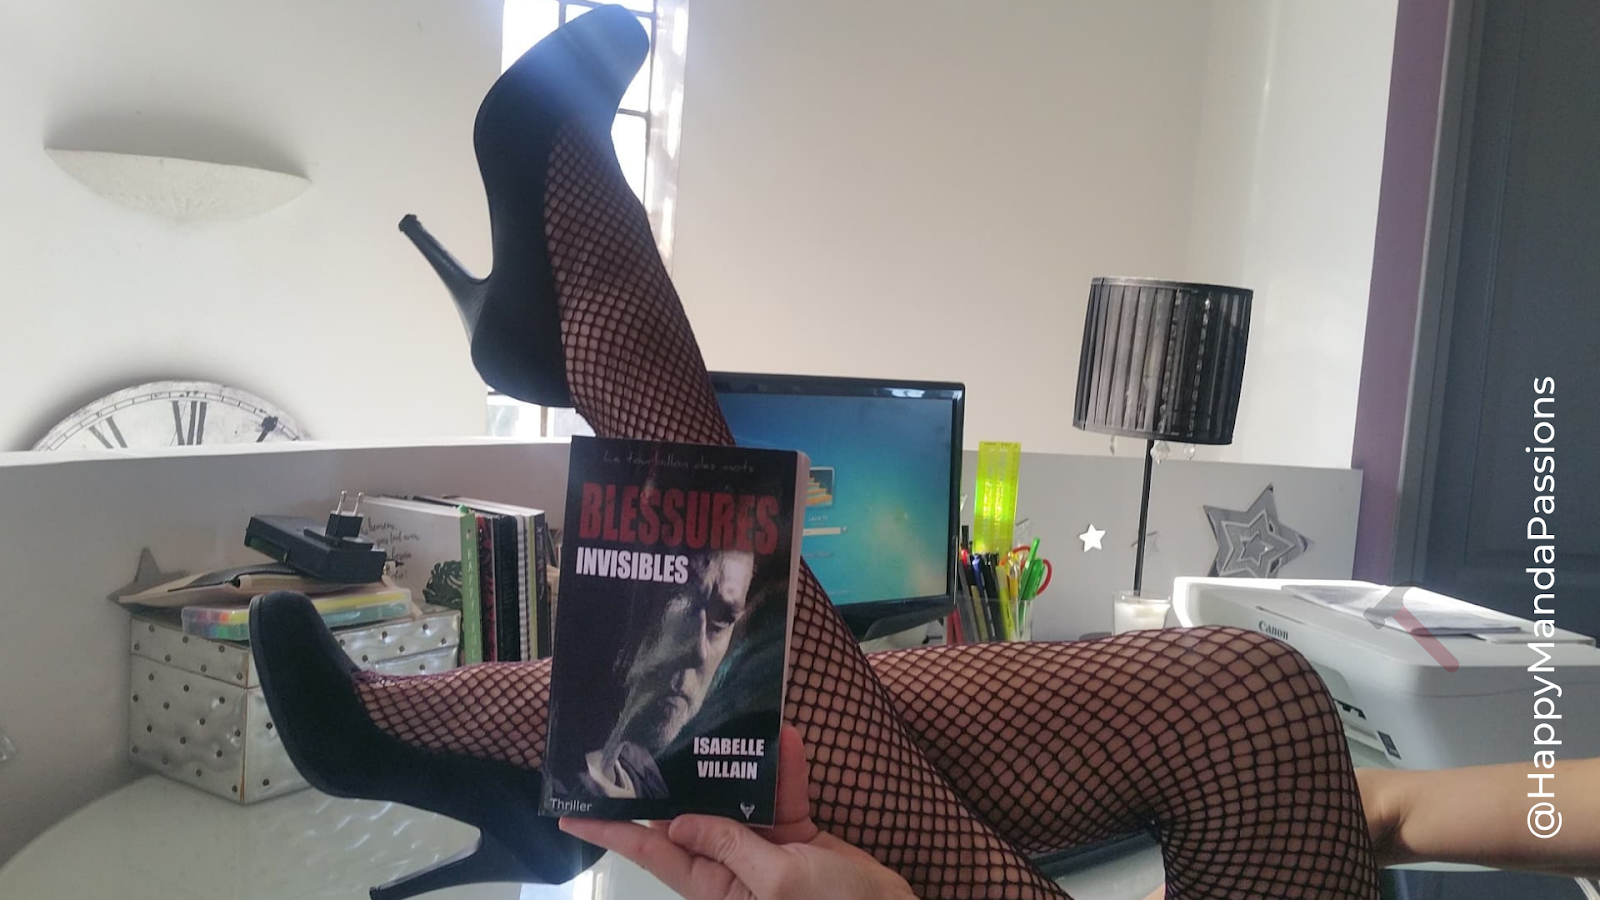 Blessures invisibles Isabelle Villain Editions Taurnada avis chronique happybook